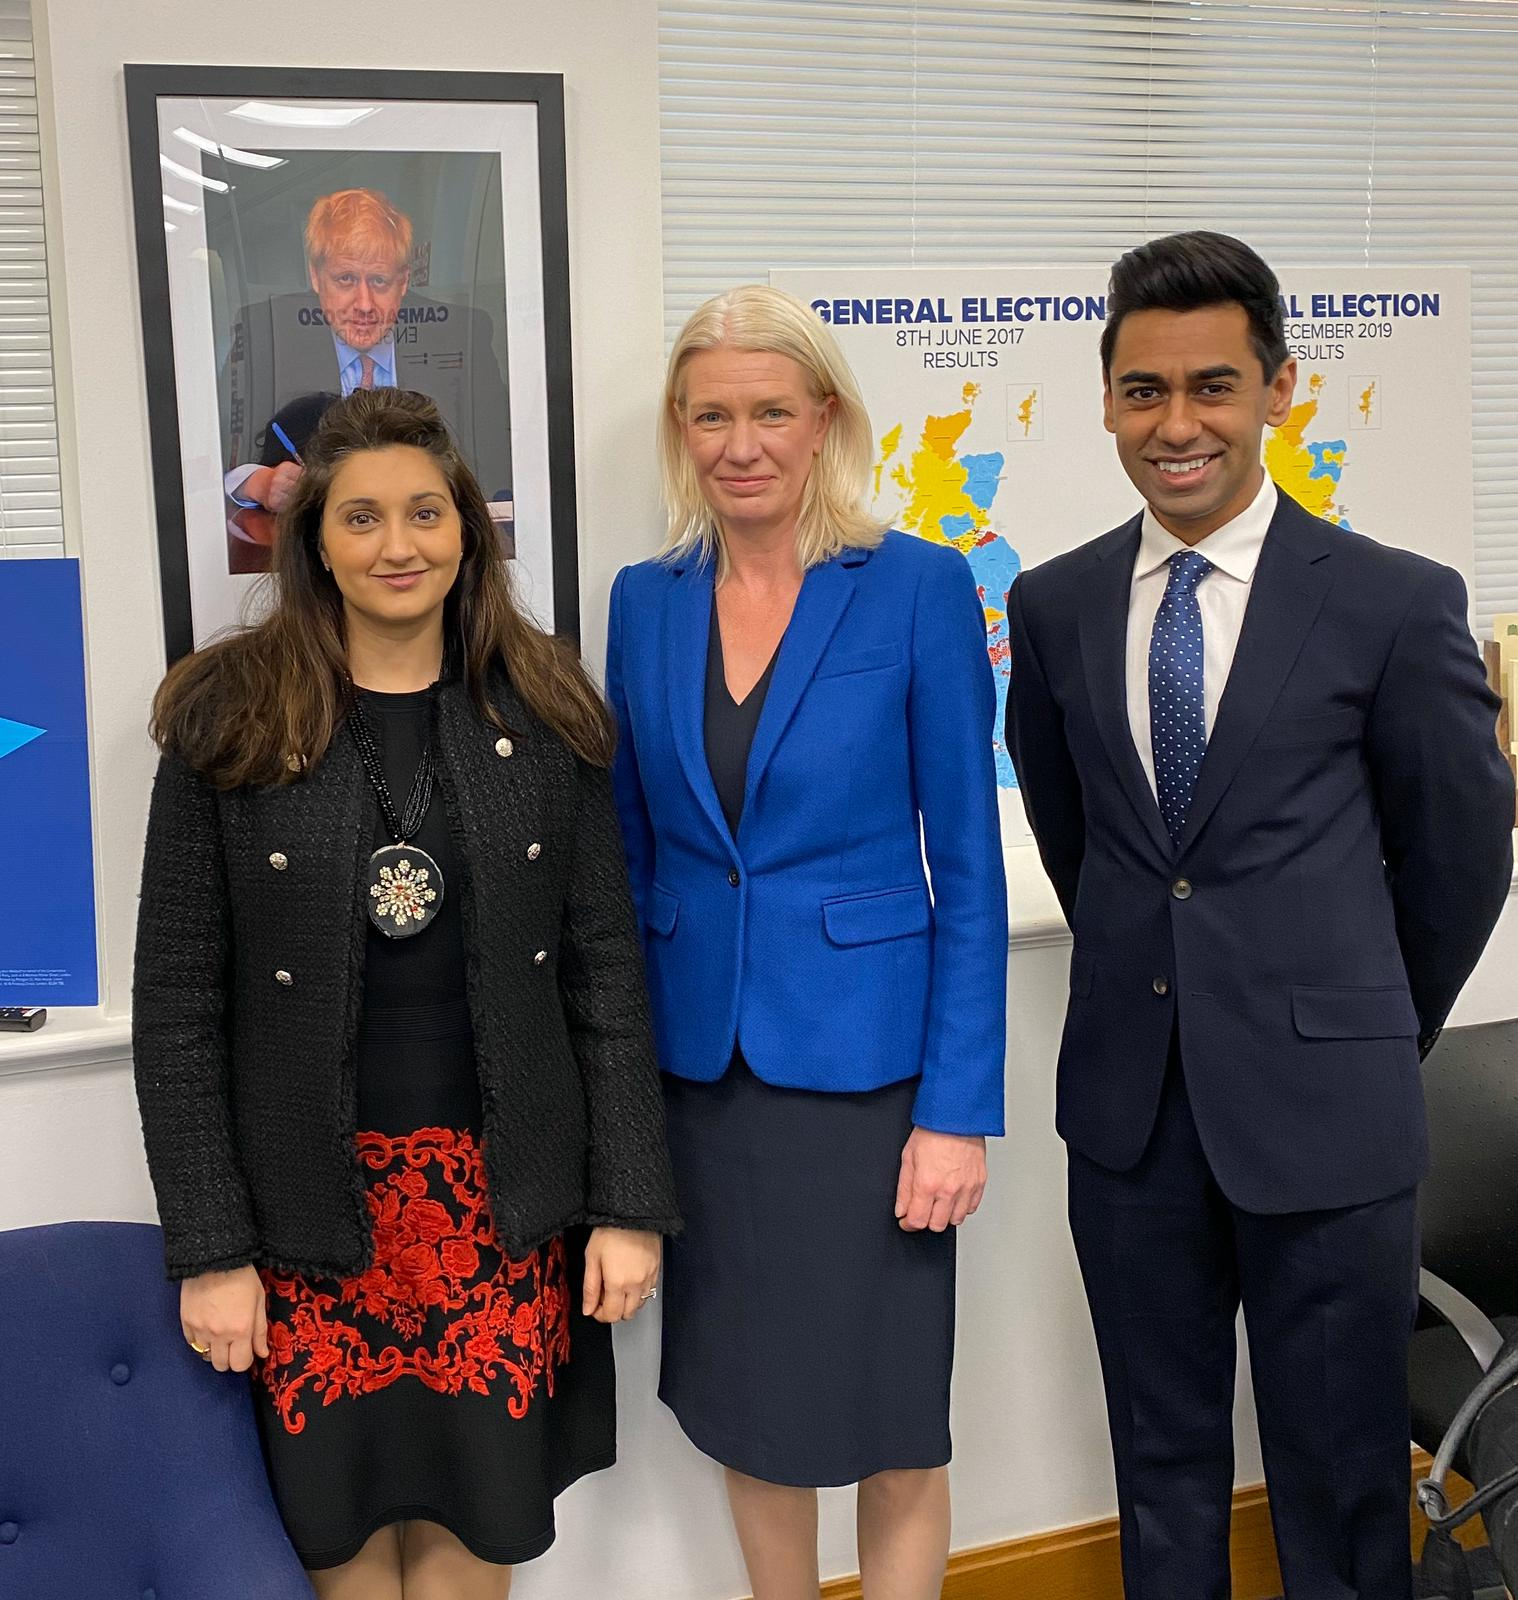 Conservative Party chairperson Amanda Milling MP (centre) with councillors Reena Ranger OBE and Ameet Jogia.